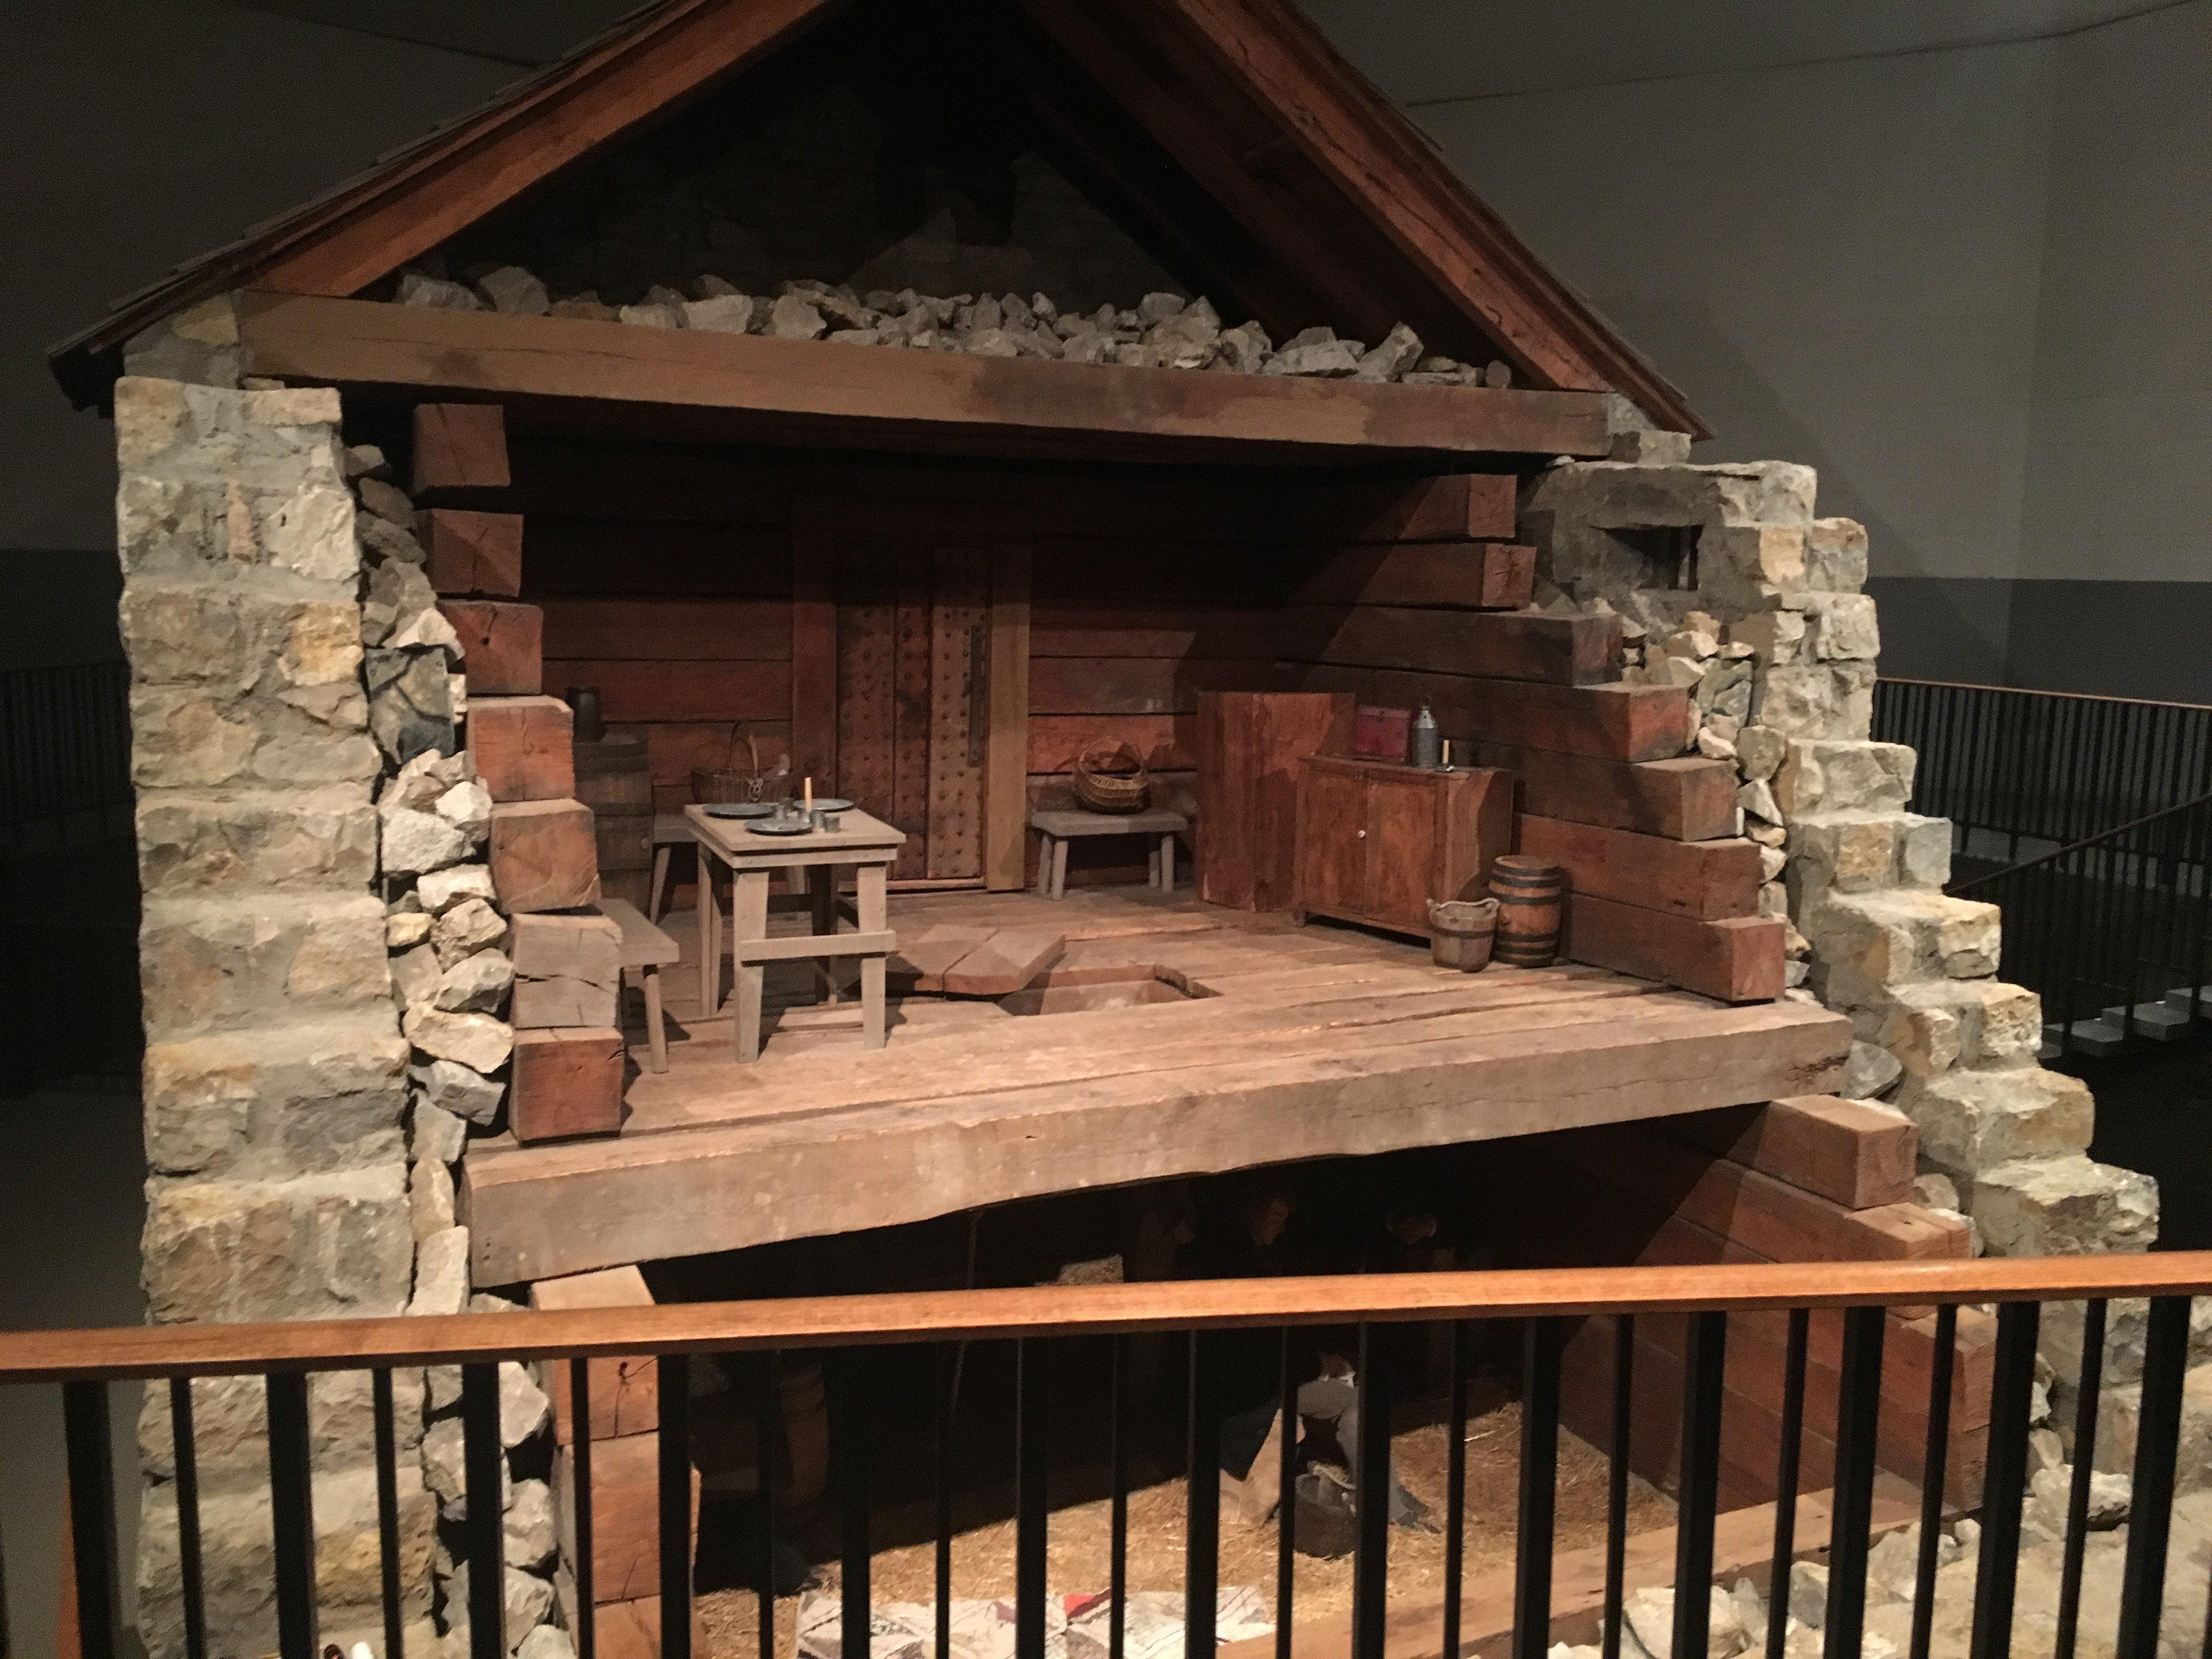 The Recreated Jail inside a visitors center offers interpretive tours led by LDS church members.